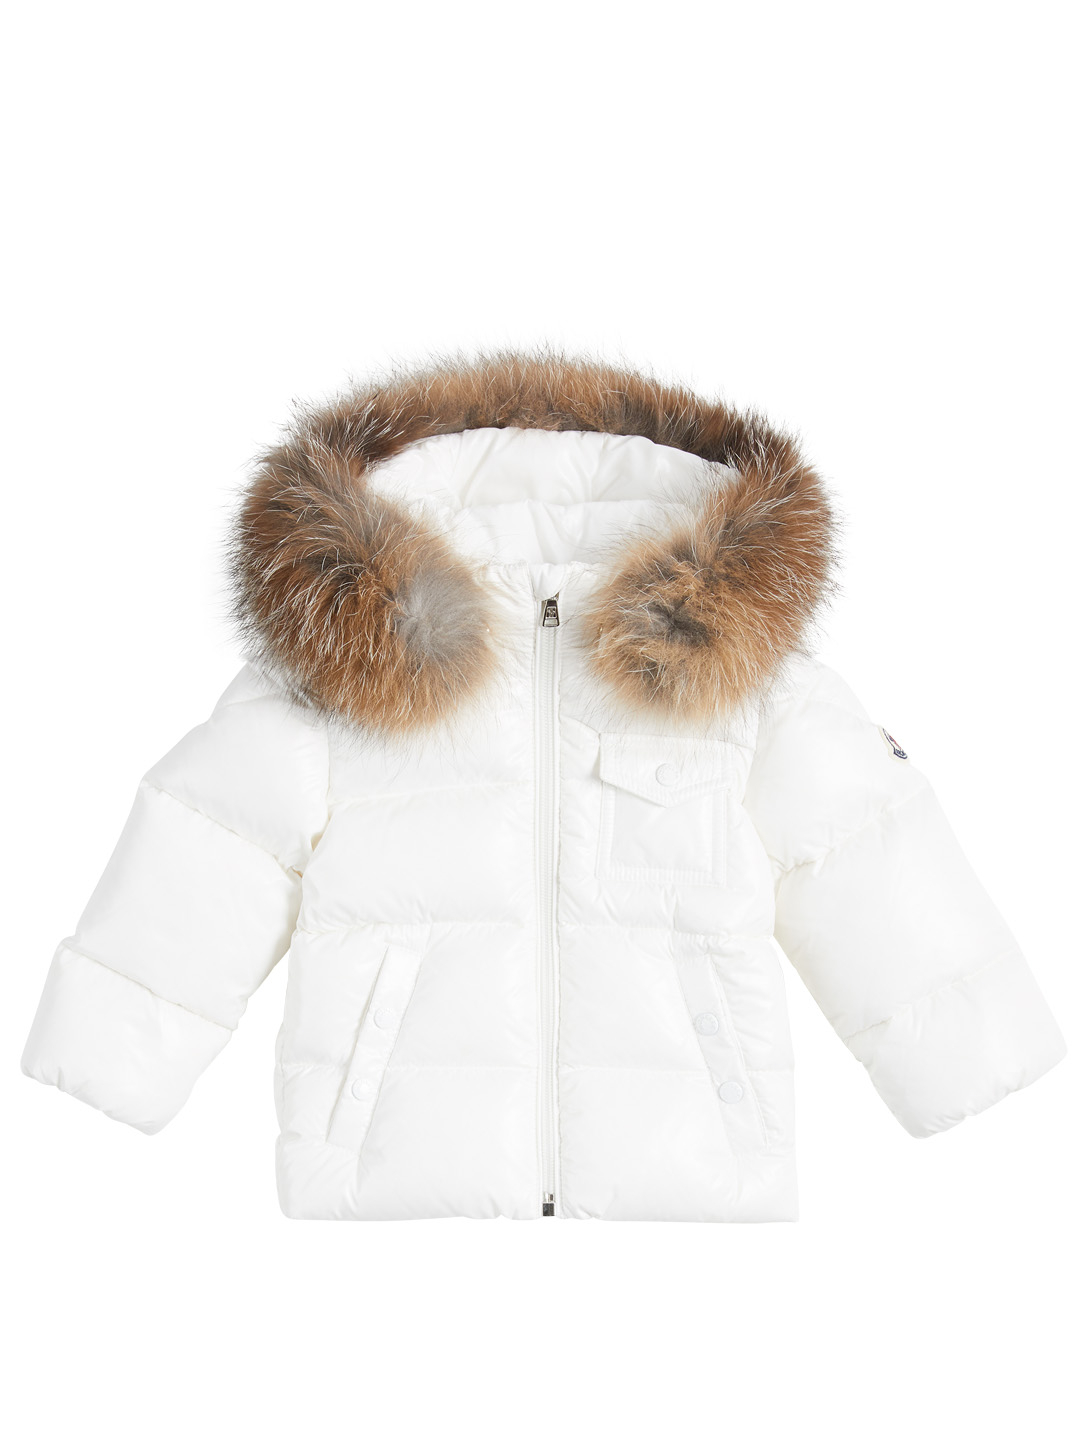 2d76e8d29340 MONCLER ENFANT K2 Unisex Puffer Coat With Fur Trim